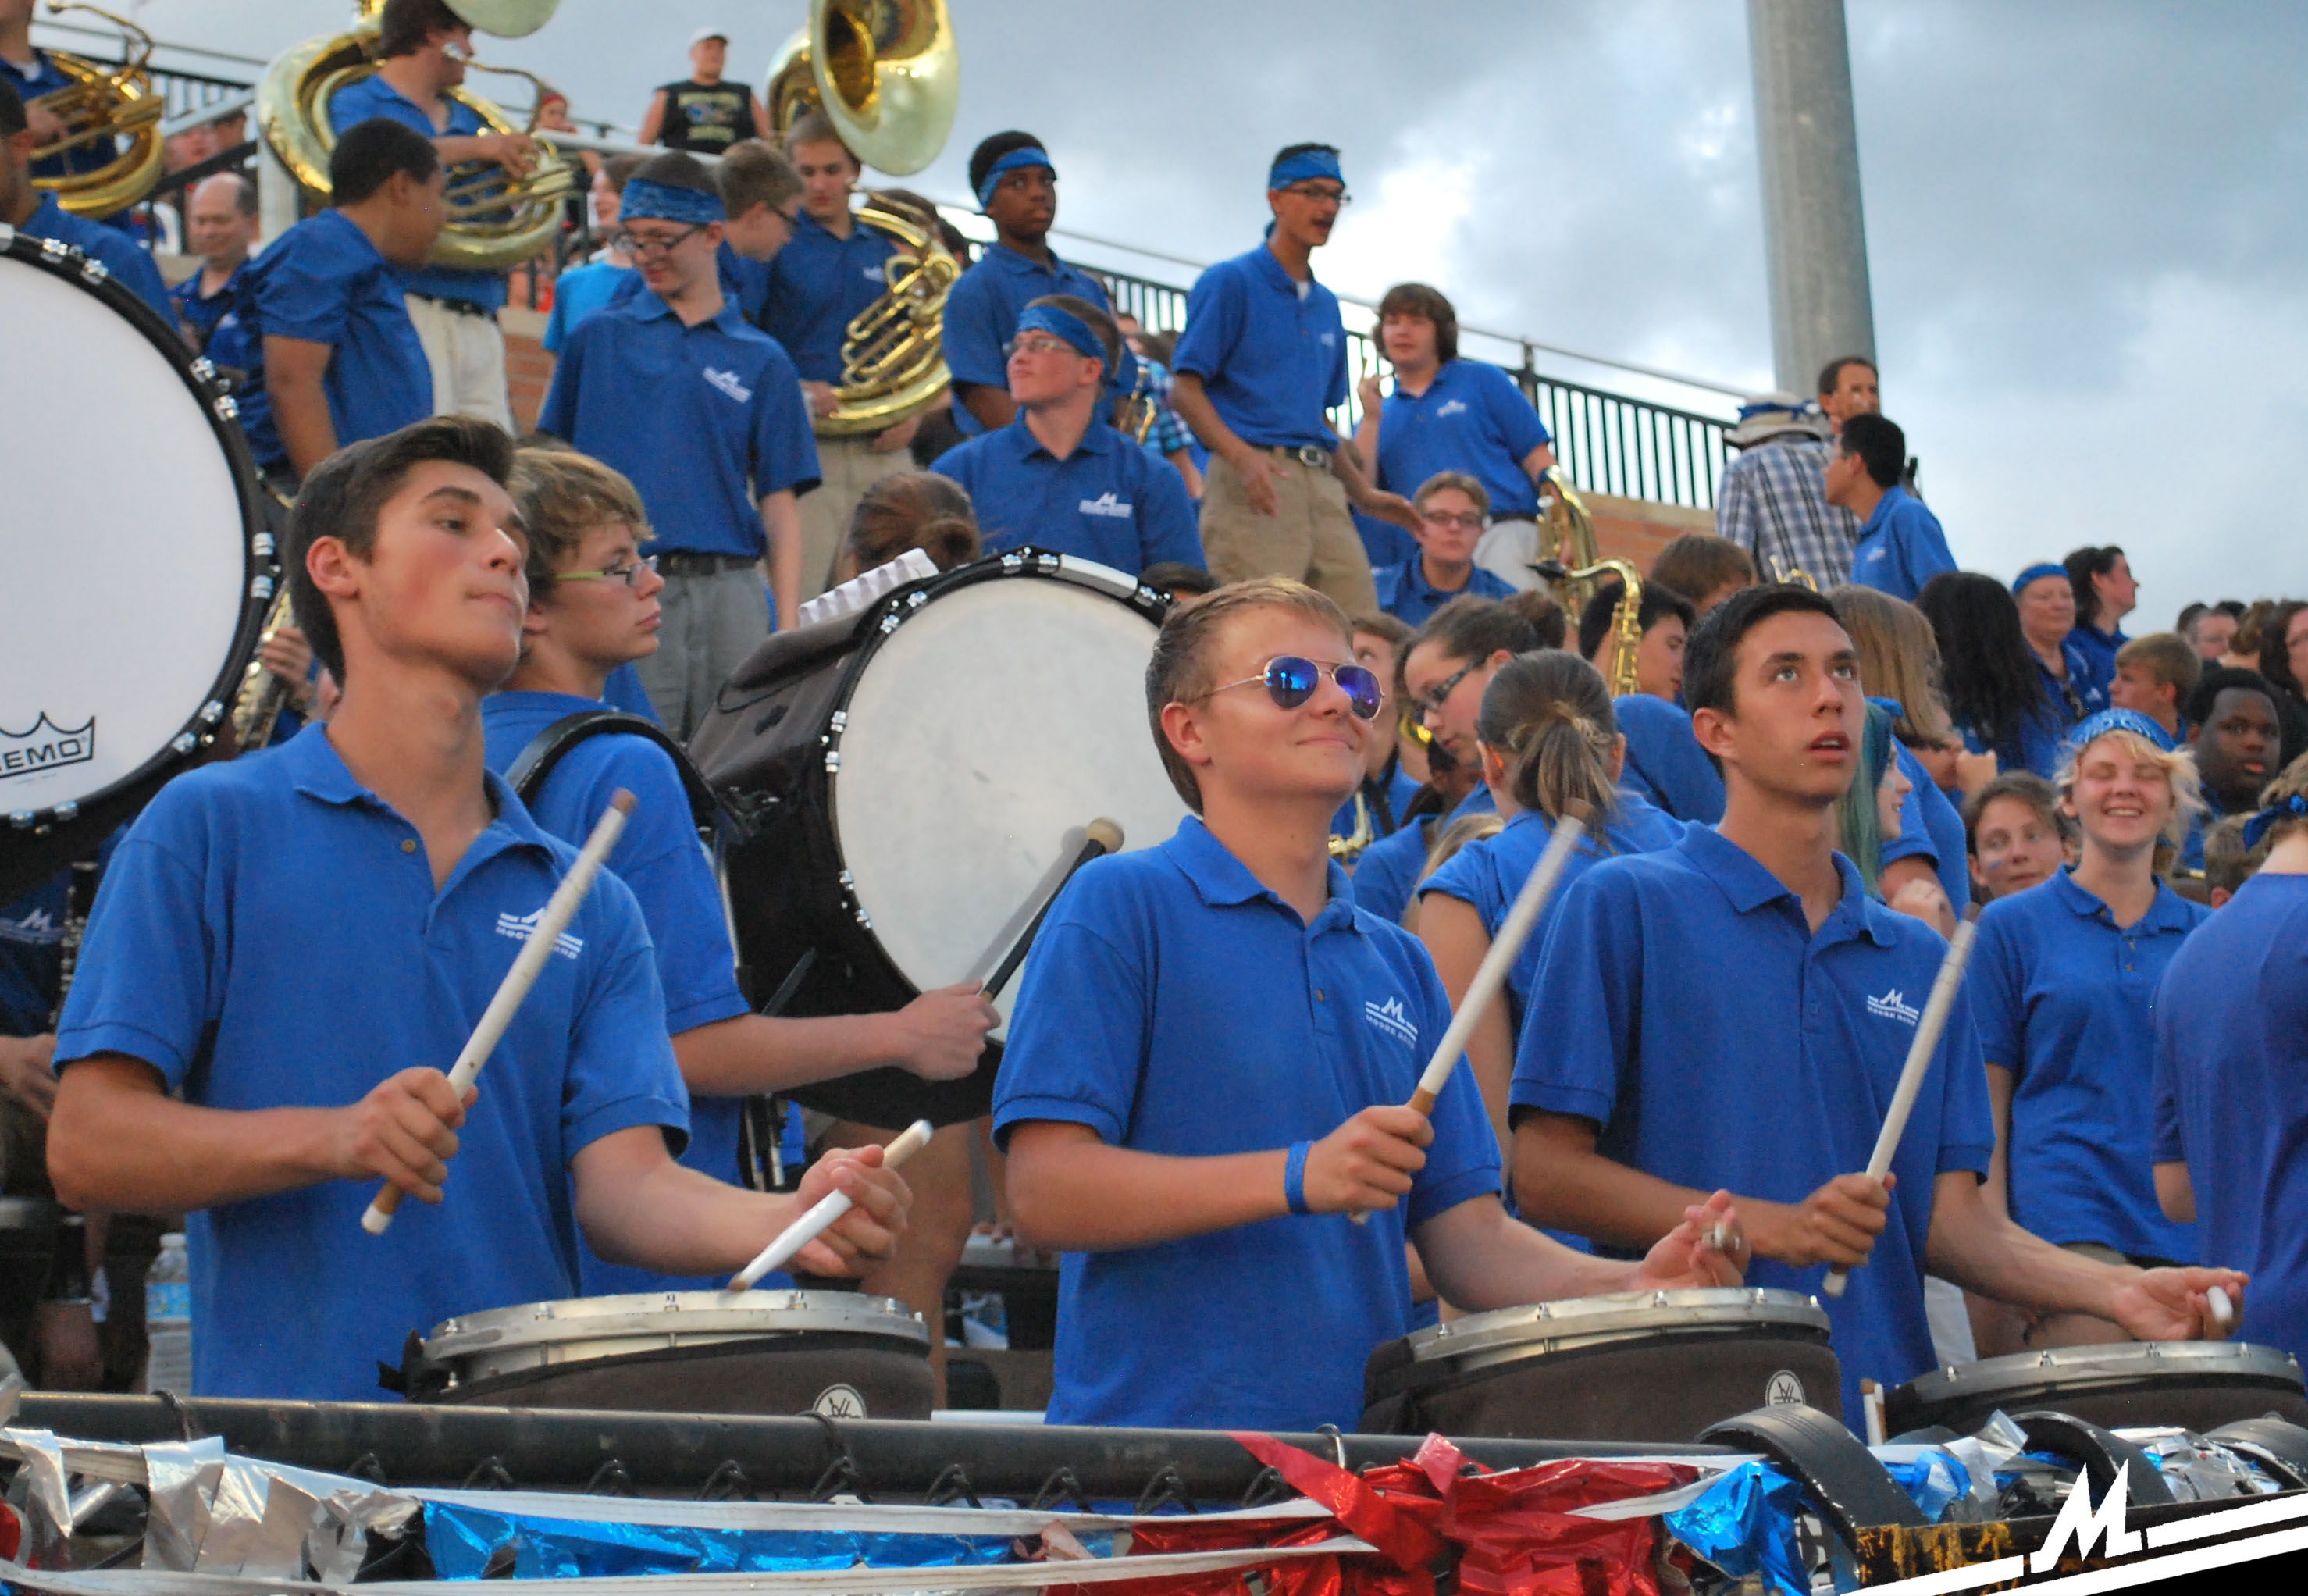 Percussion in the Stands